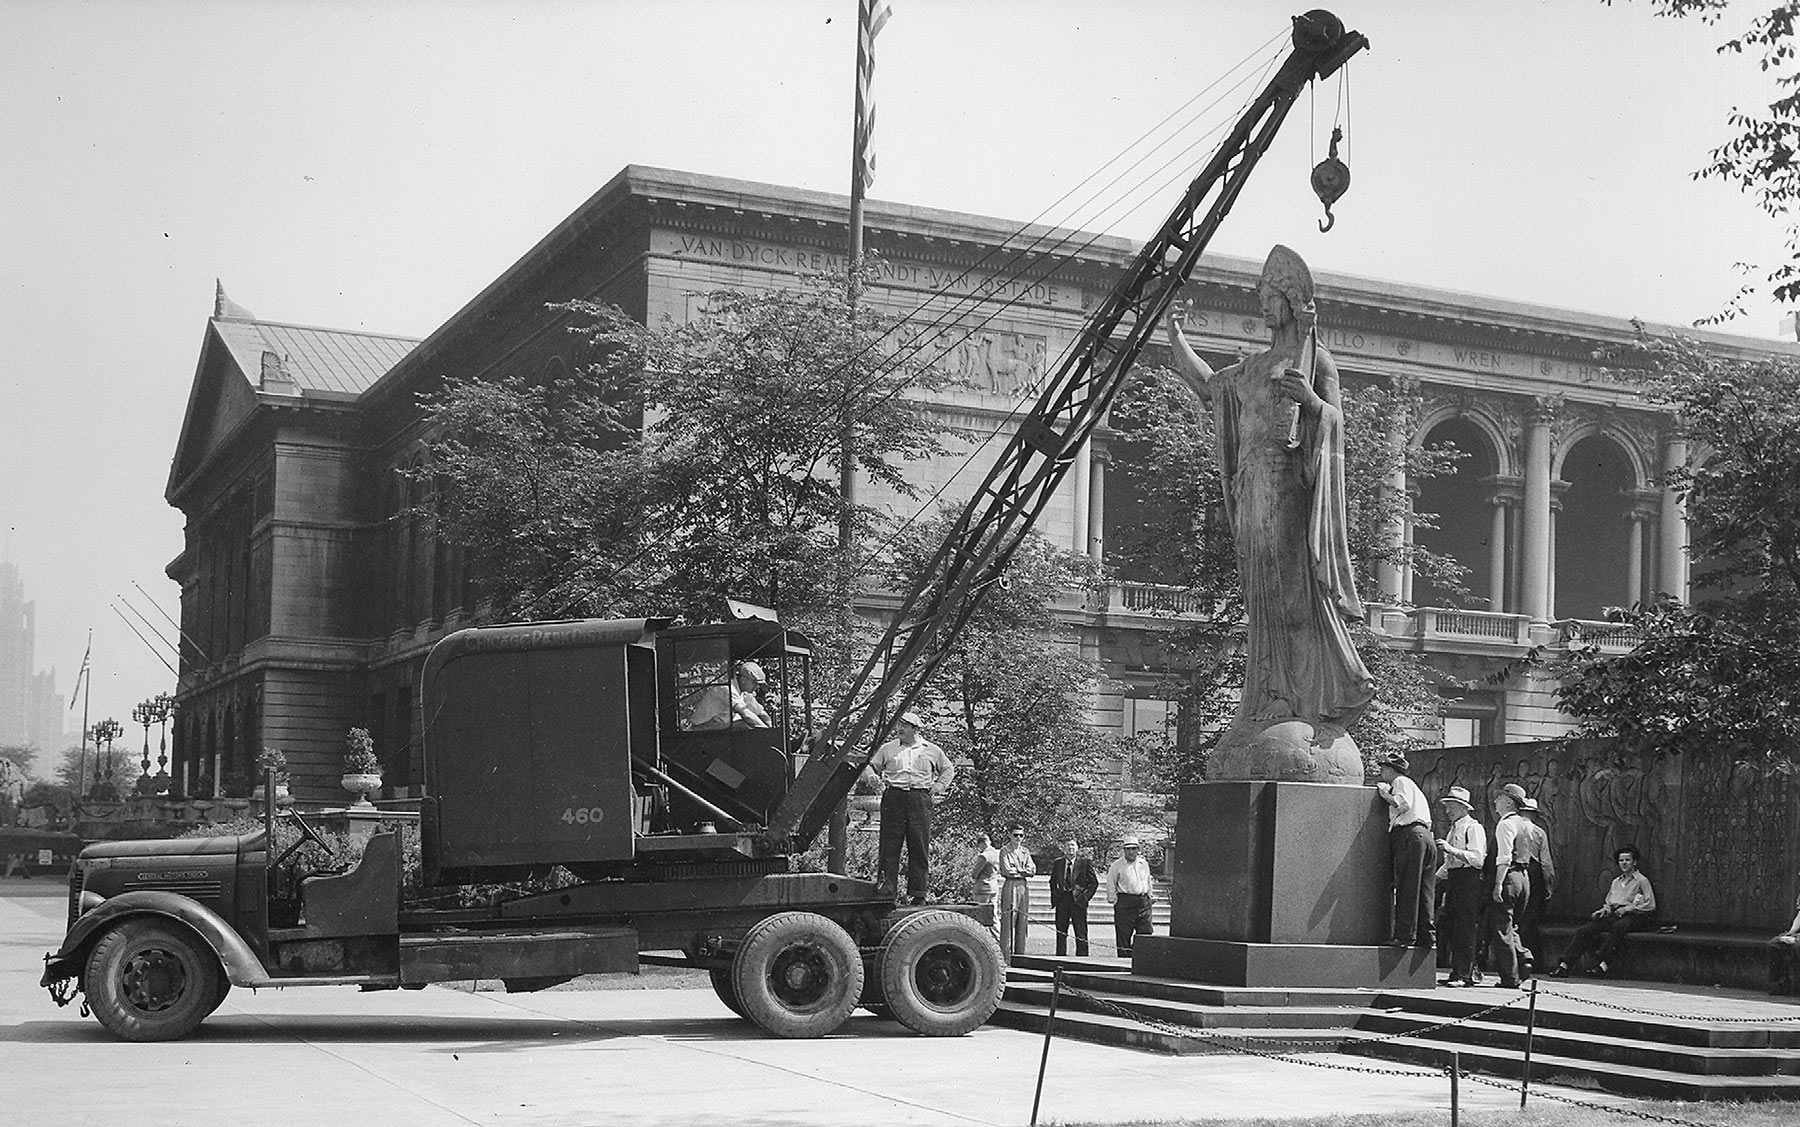 The Spirit of Music  , originally installed near the Art Institute of Chicago's South Garden in 1923, was moved for the first time in the early 1940s. Chicago Park District Records: Photographs, Special Collections, Chicago Public Library.